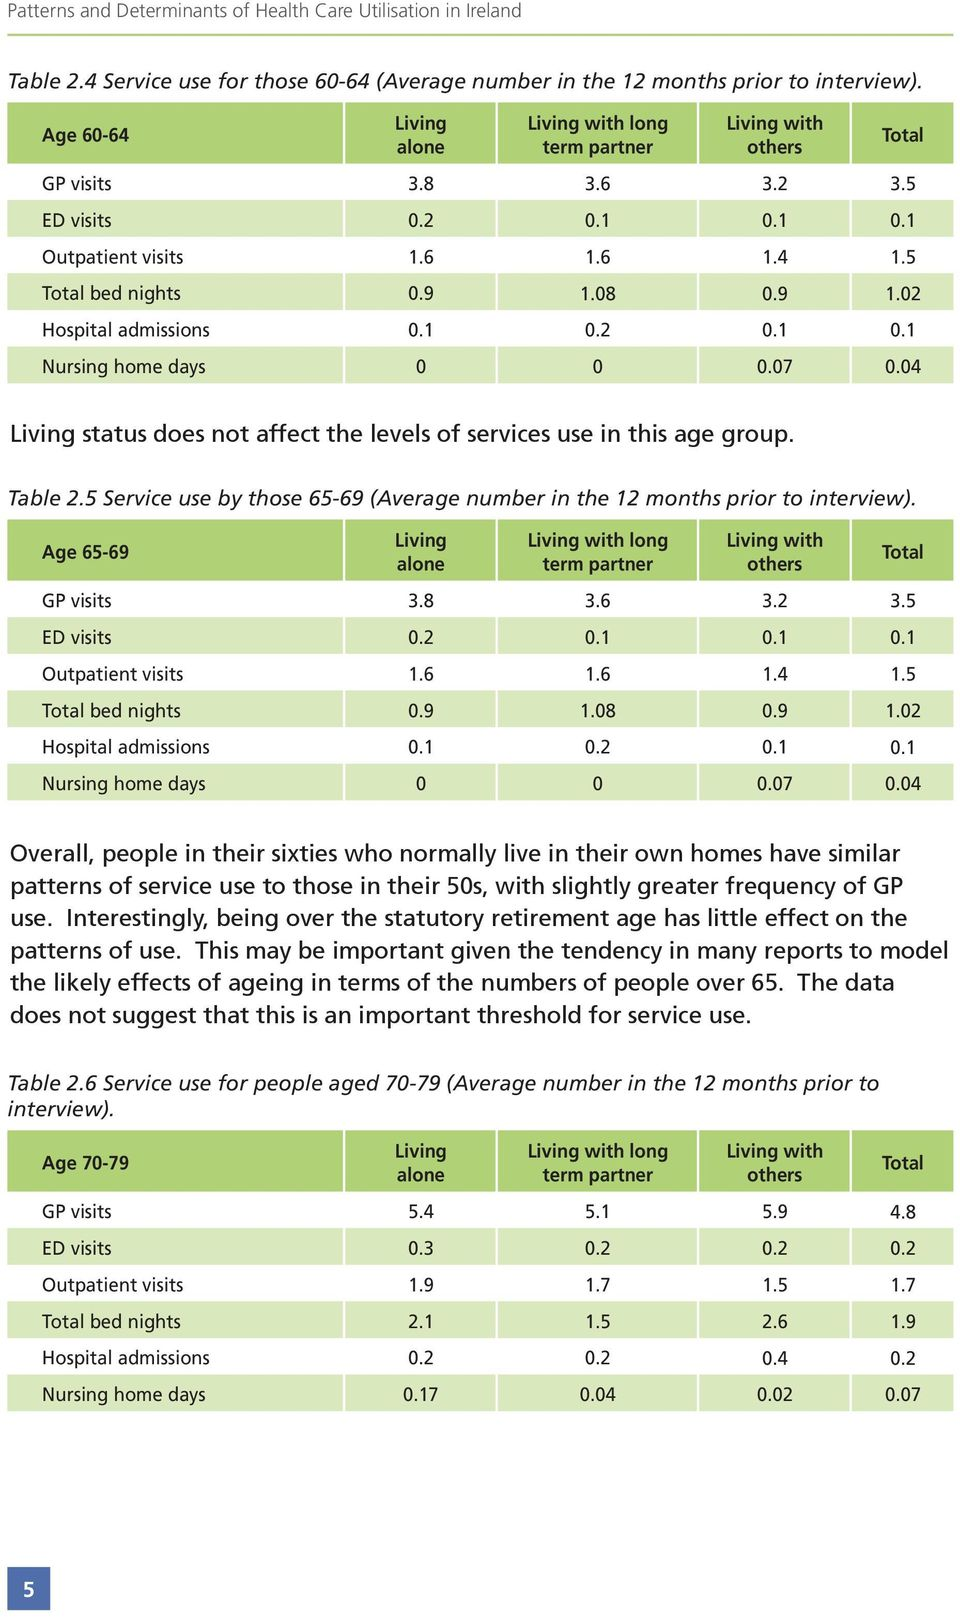 1.2.1.1 Nursing home days.7.4 Living status does not affect the levels of services use in this age group. Table 2.5 Service use by those 65-69 (Average number in the 12 months prior to interview).